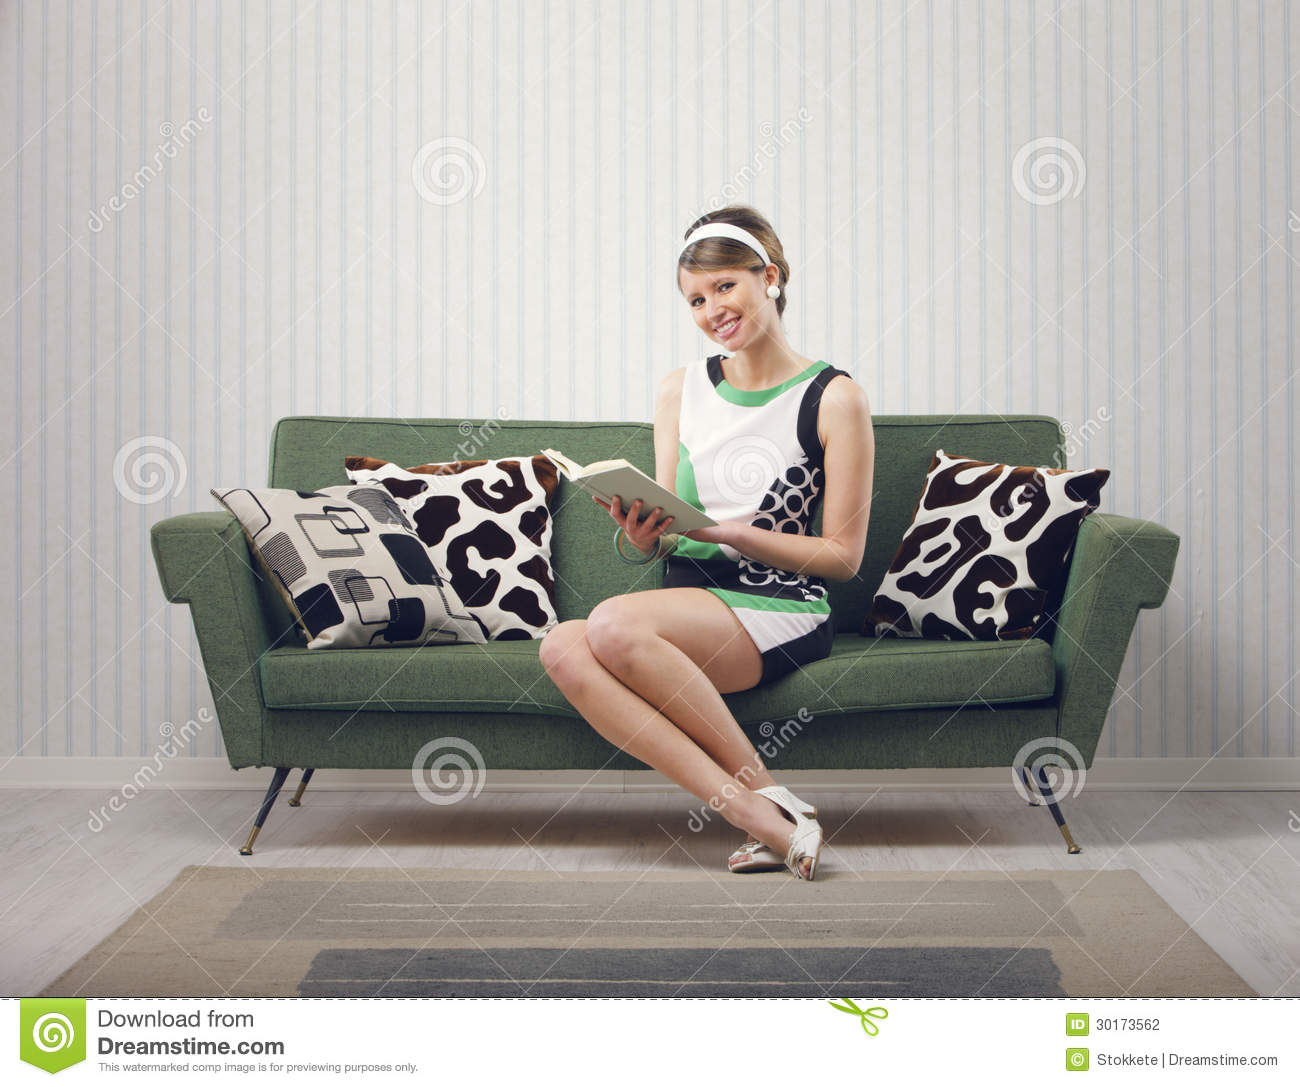 girl sitting on the couch stock photography image 30173562. Black Bedroom Furniture Sets. Home Design Ideas